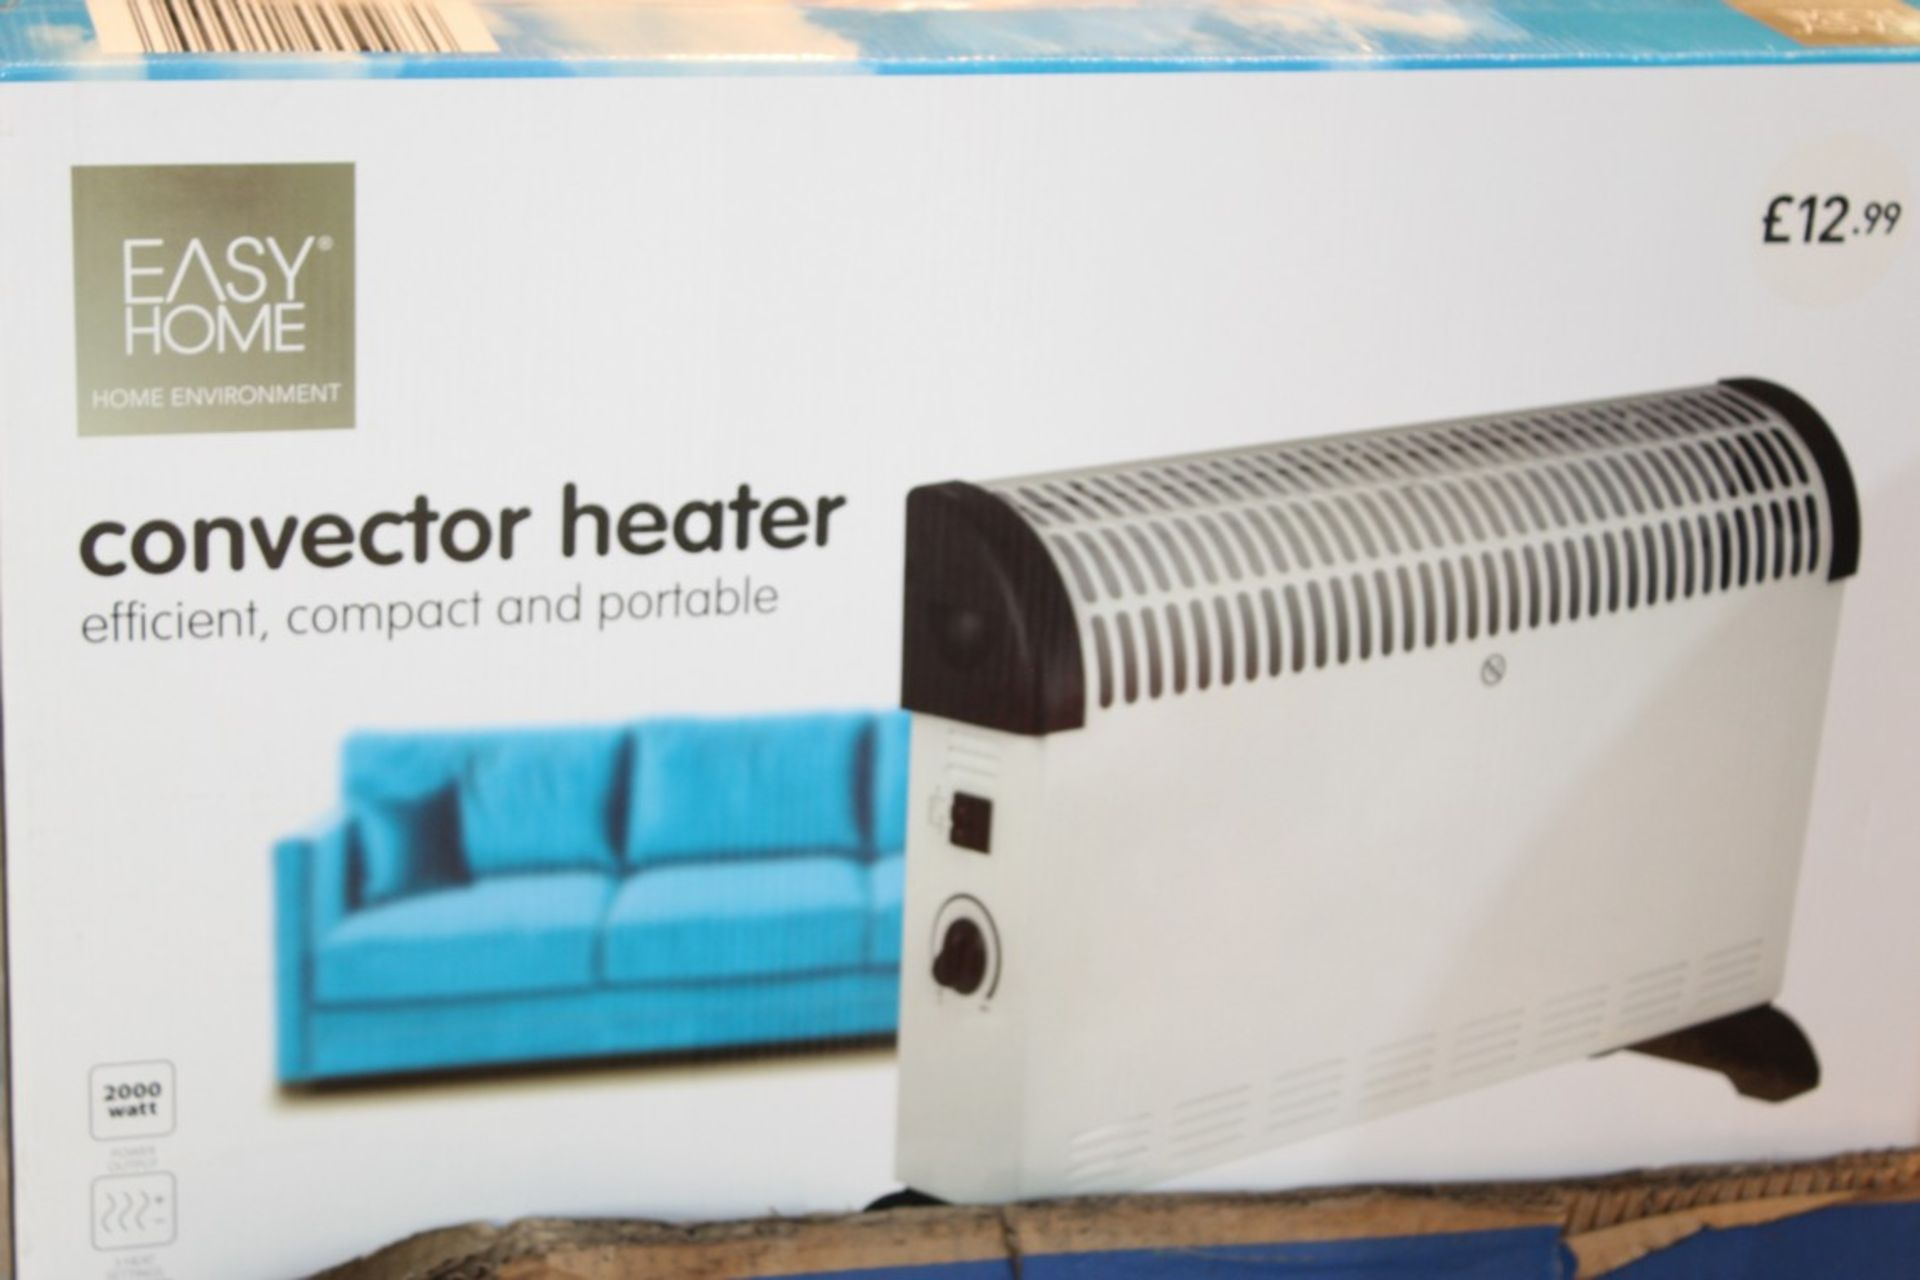 Lot 241 - Boxed Easy Home Efficient Compact & Portable Convector Heater RRP £15 Each (Pictures Are For